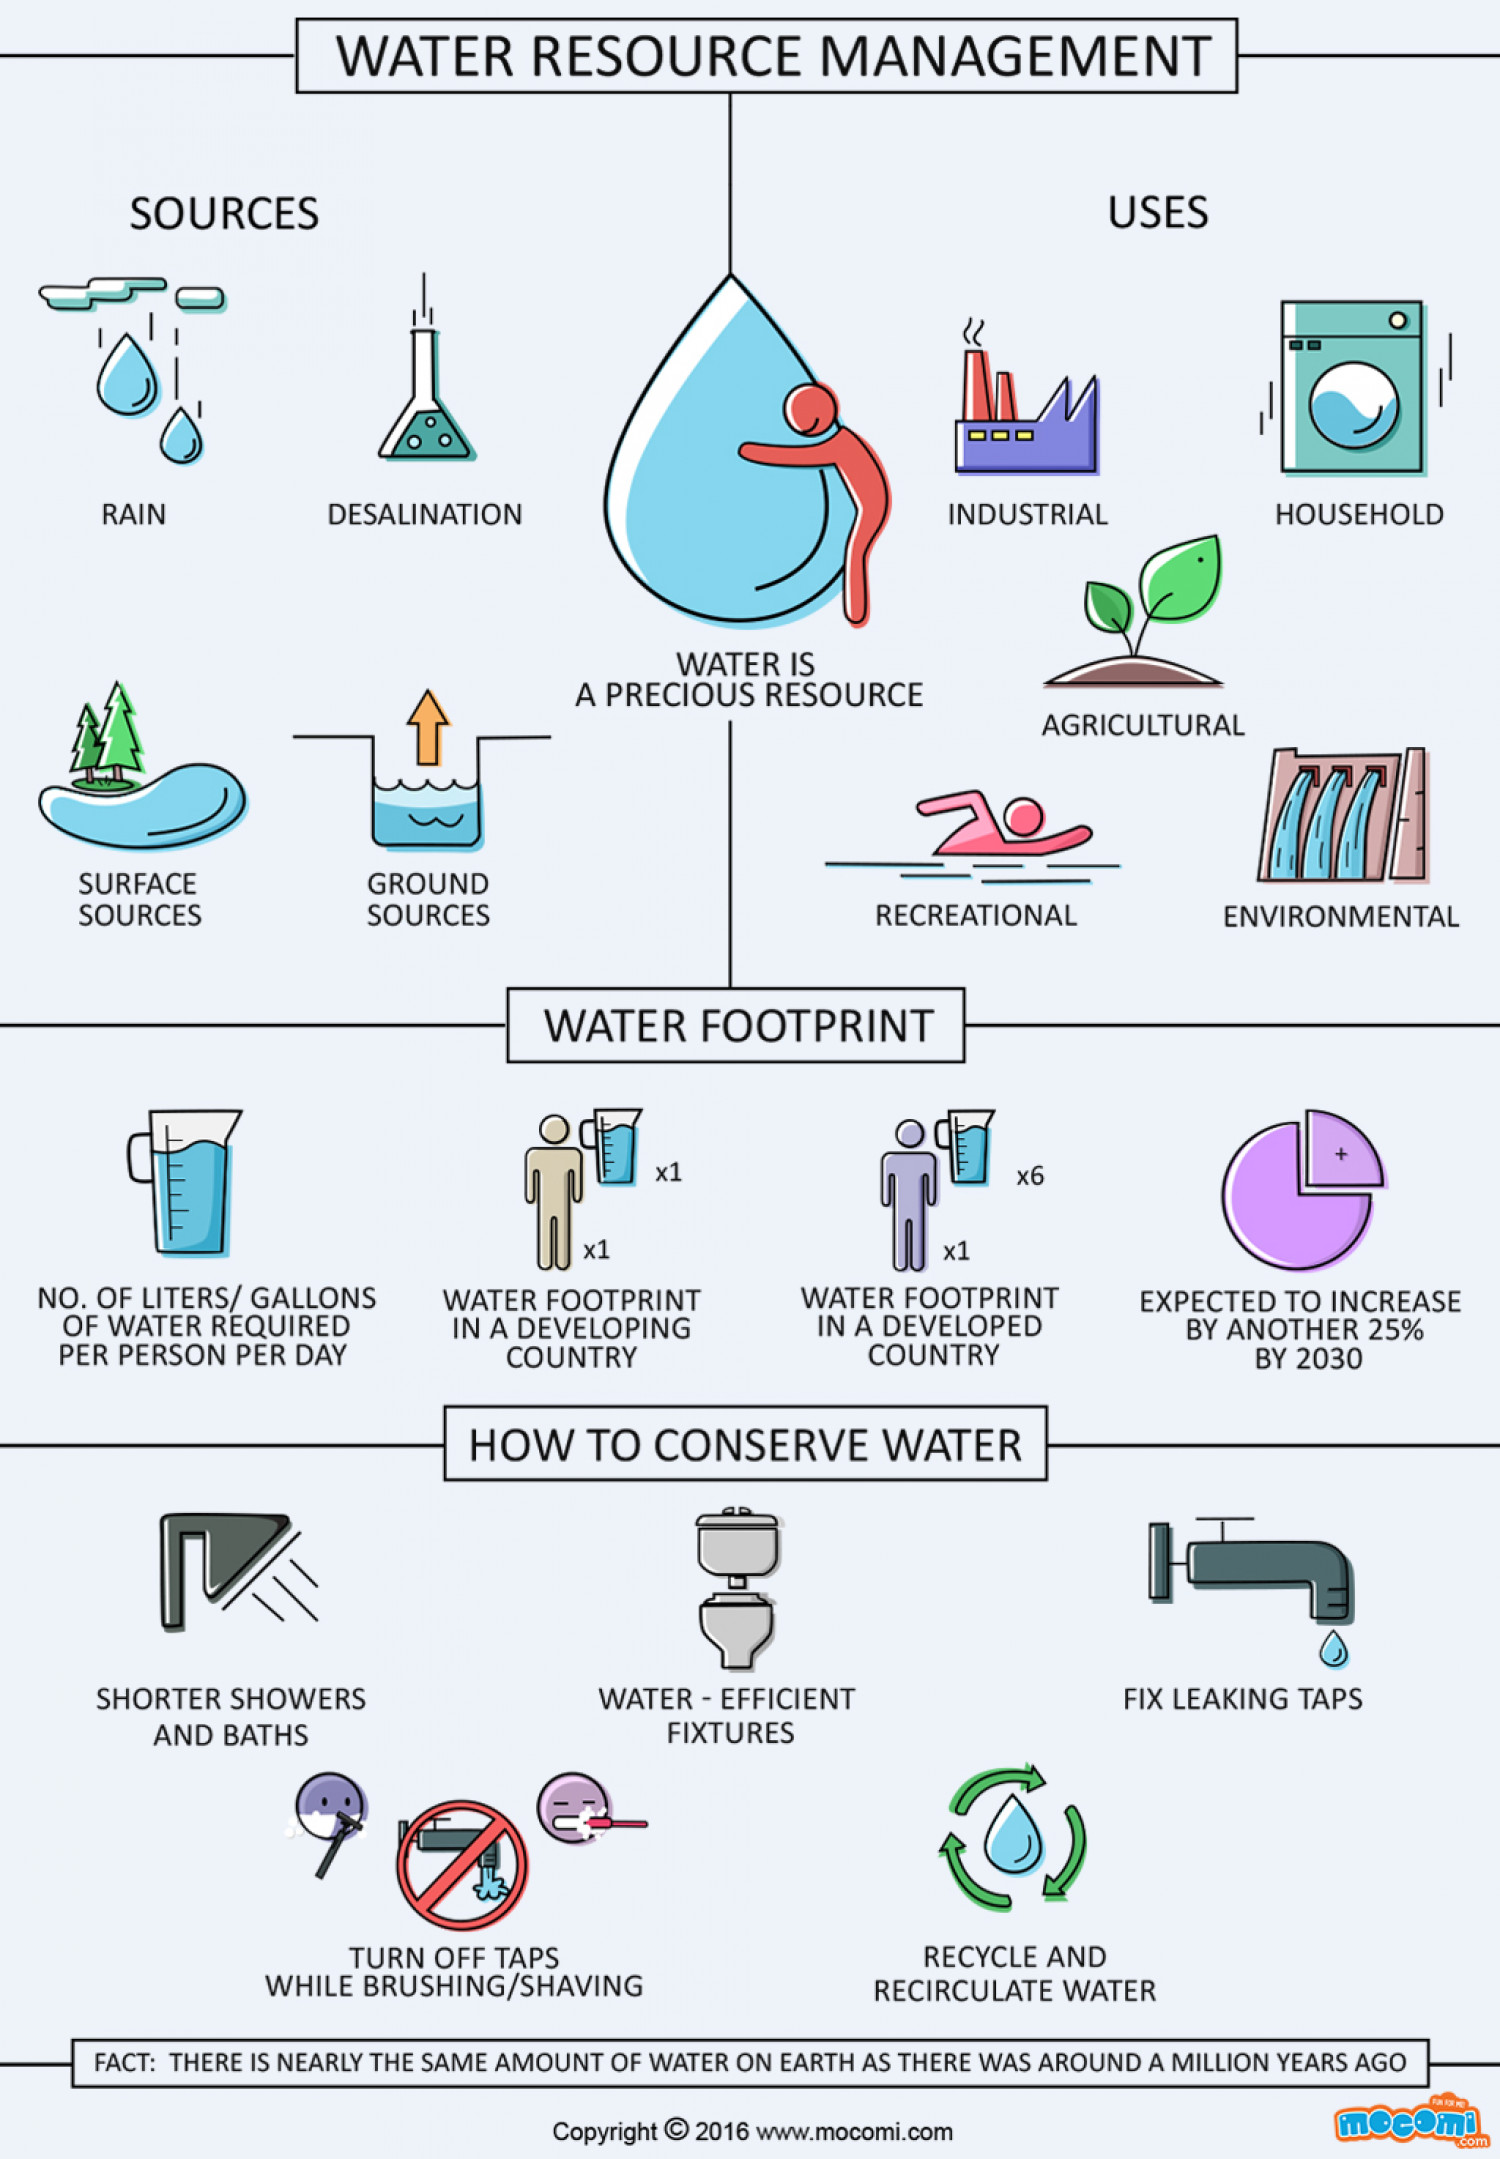 Water Resource Management Infographic